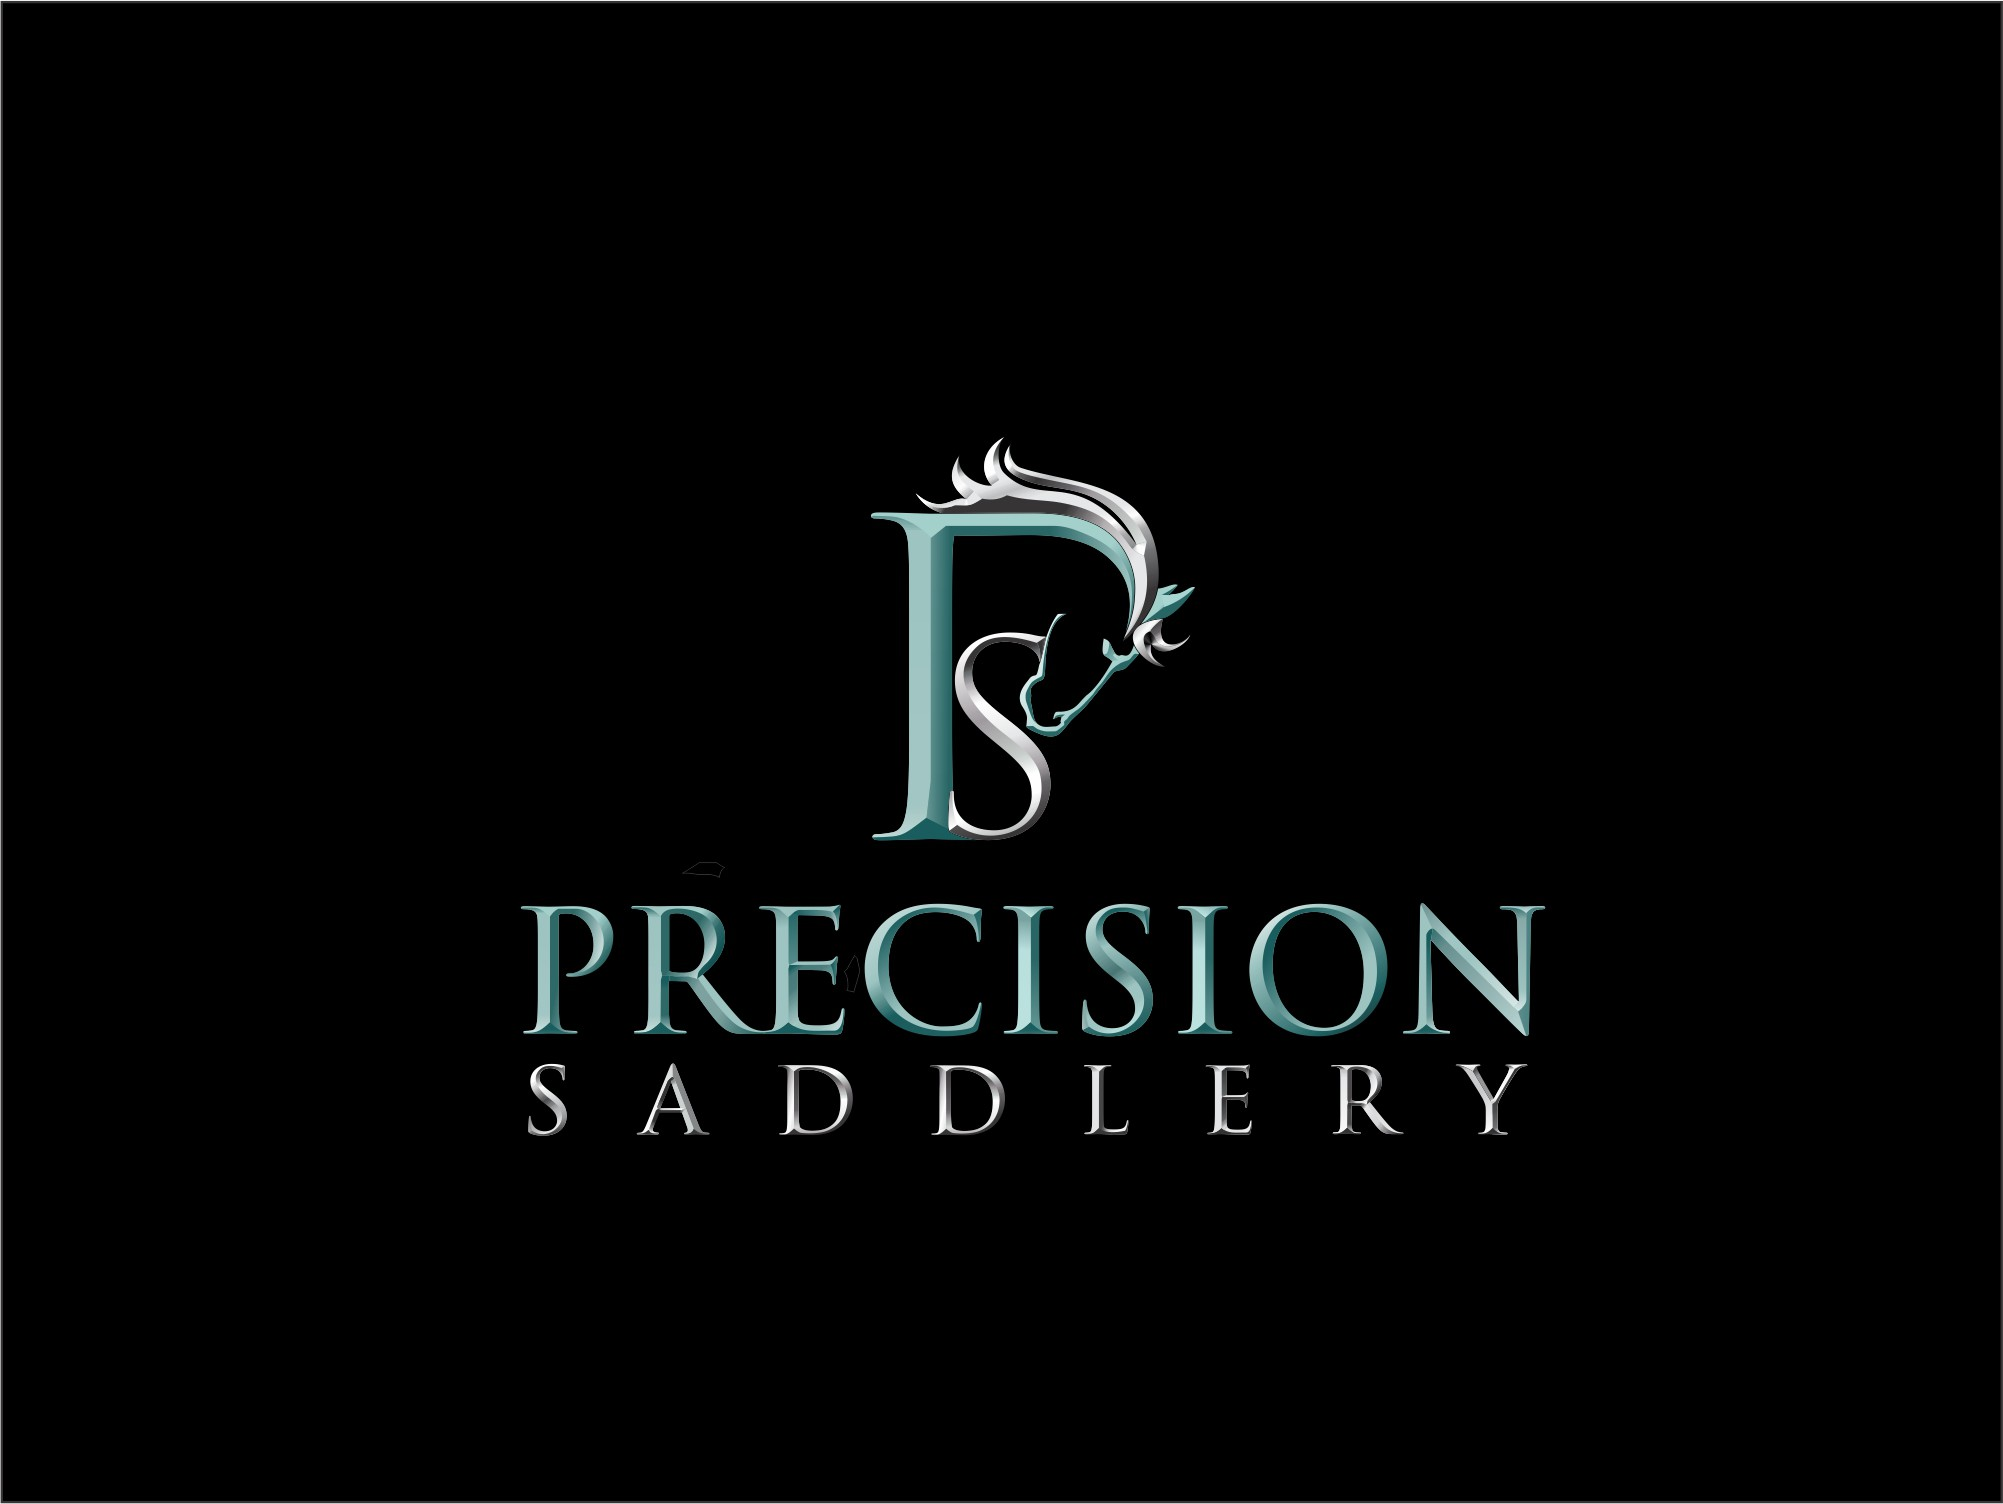 Equestrian Logo - Do you LOVE horses? This logo could be seen at the Olympics. Help!